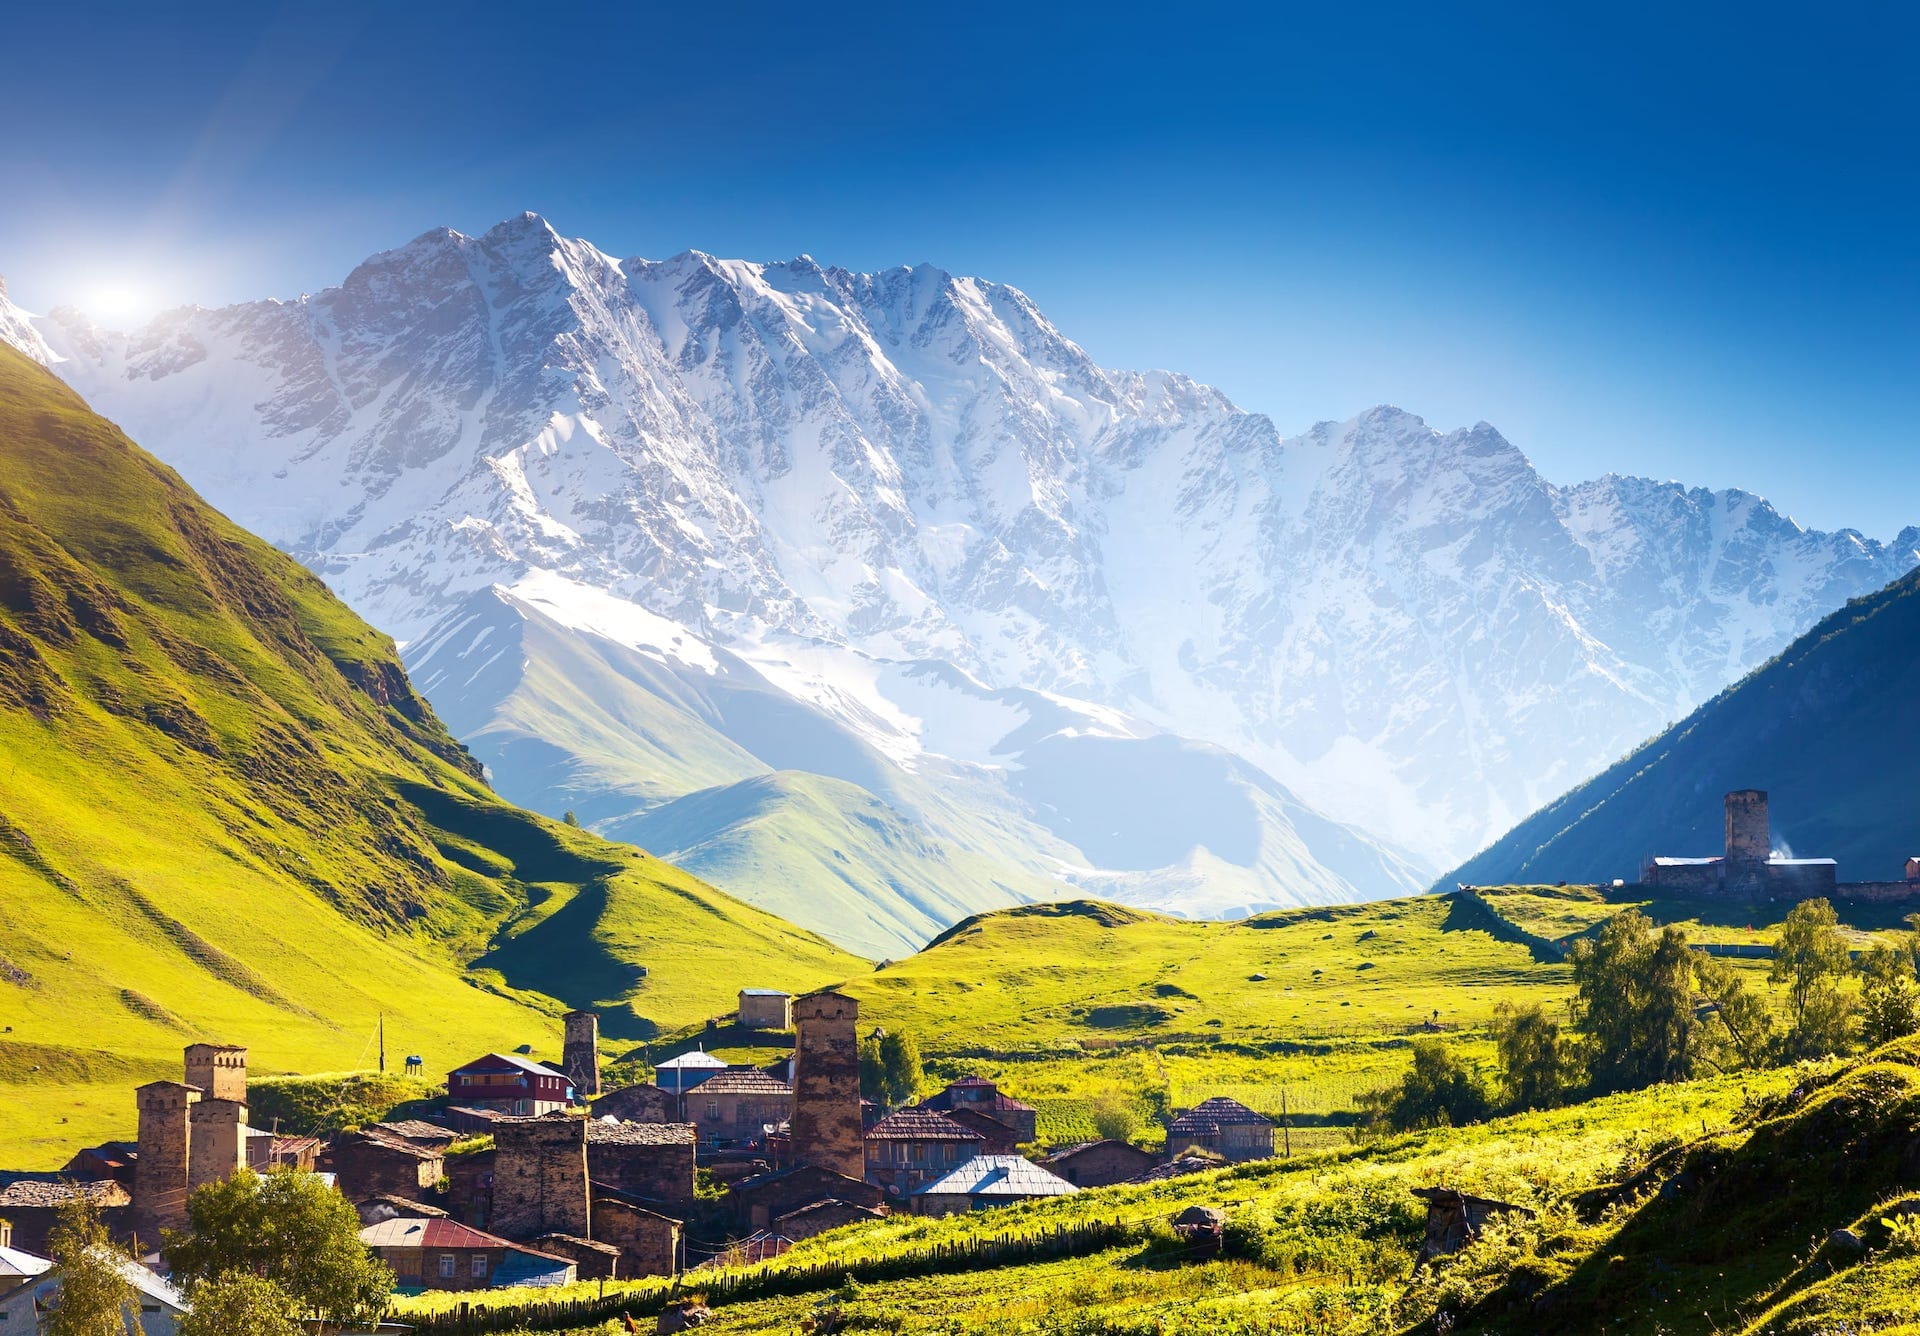 Introducing Georgia - Ushguli | Tailor Made Holidays to the Caucasus